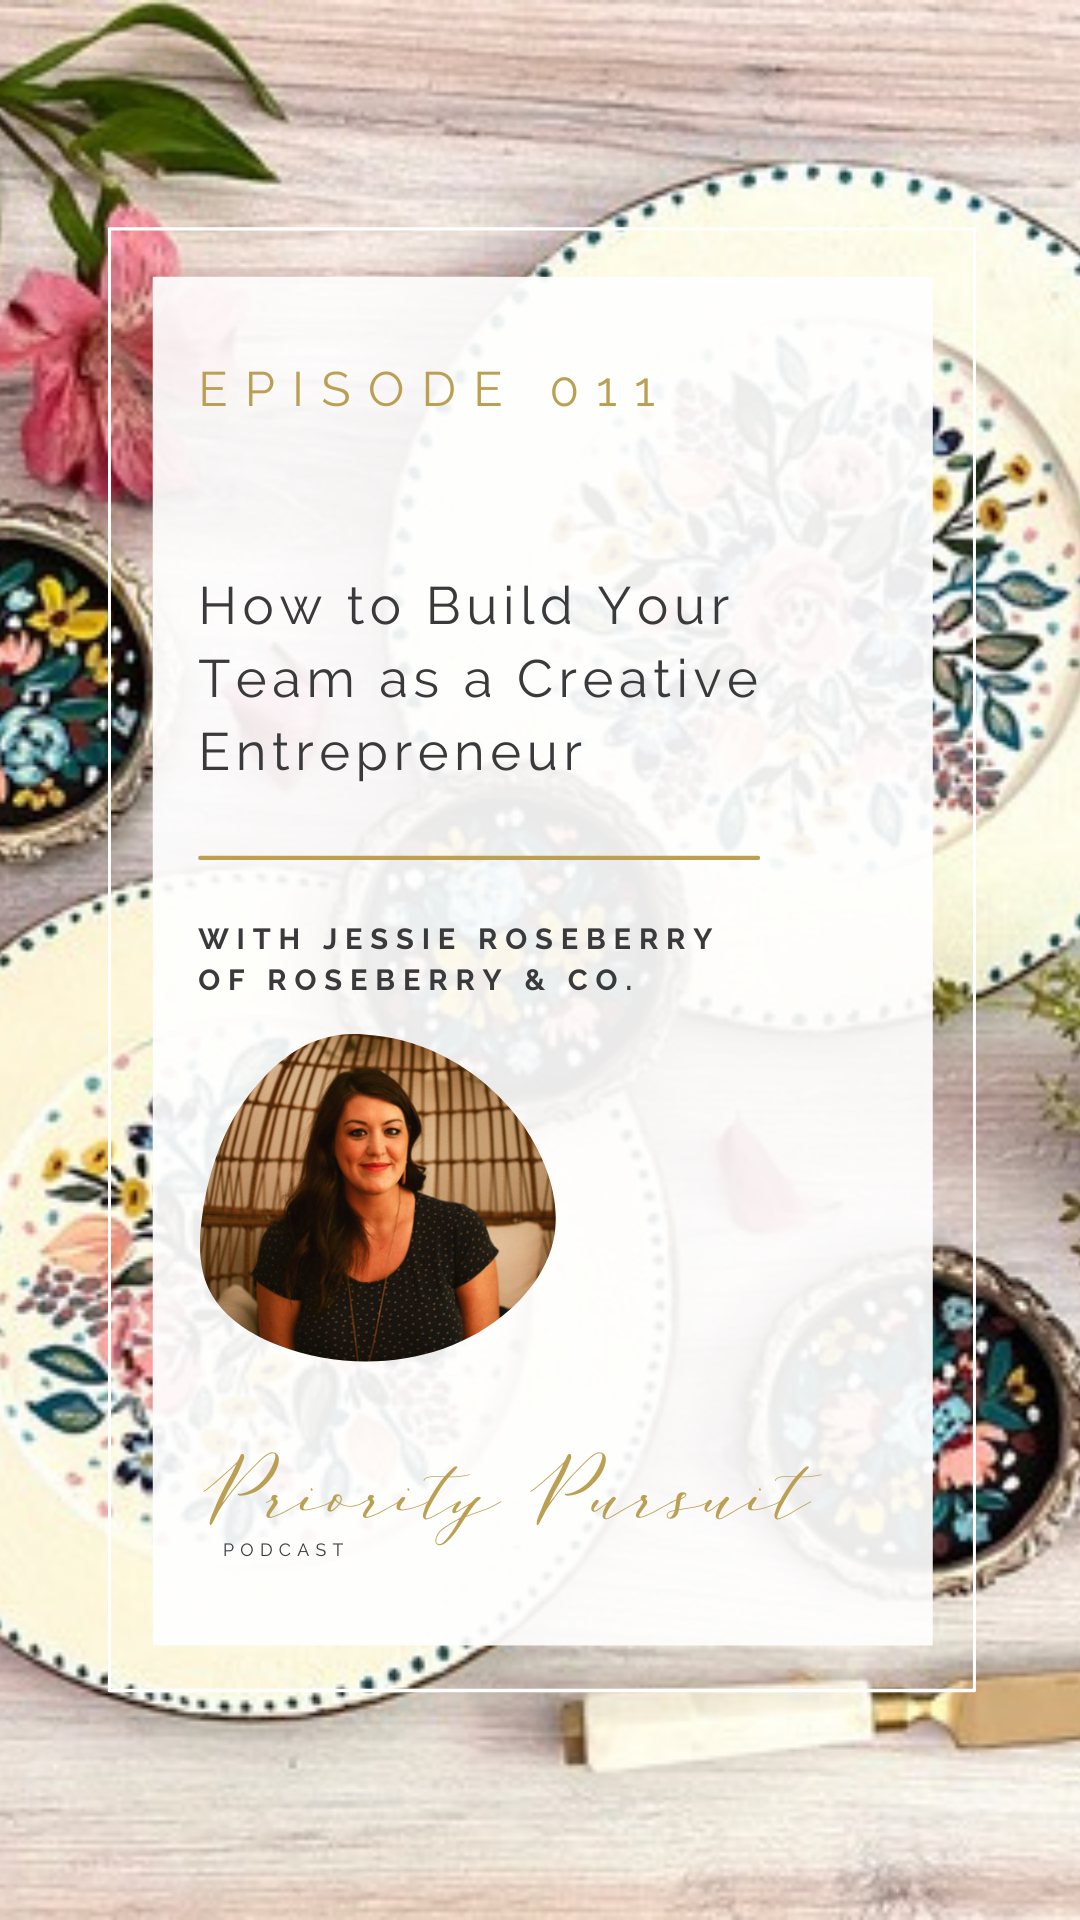 West Lafayette, Indiana Watercolor Artist Jessie Roseberry of Roseberry & Co. explains how to build your team as a creative entrepreneur.